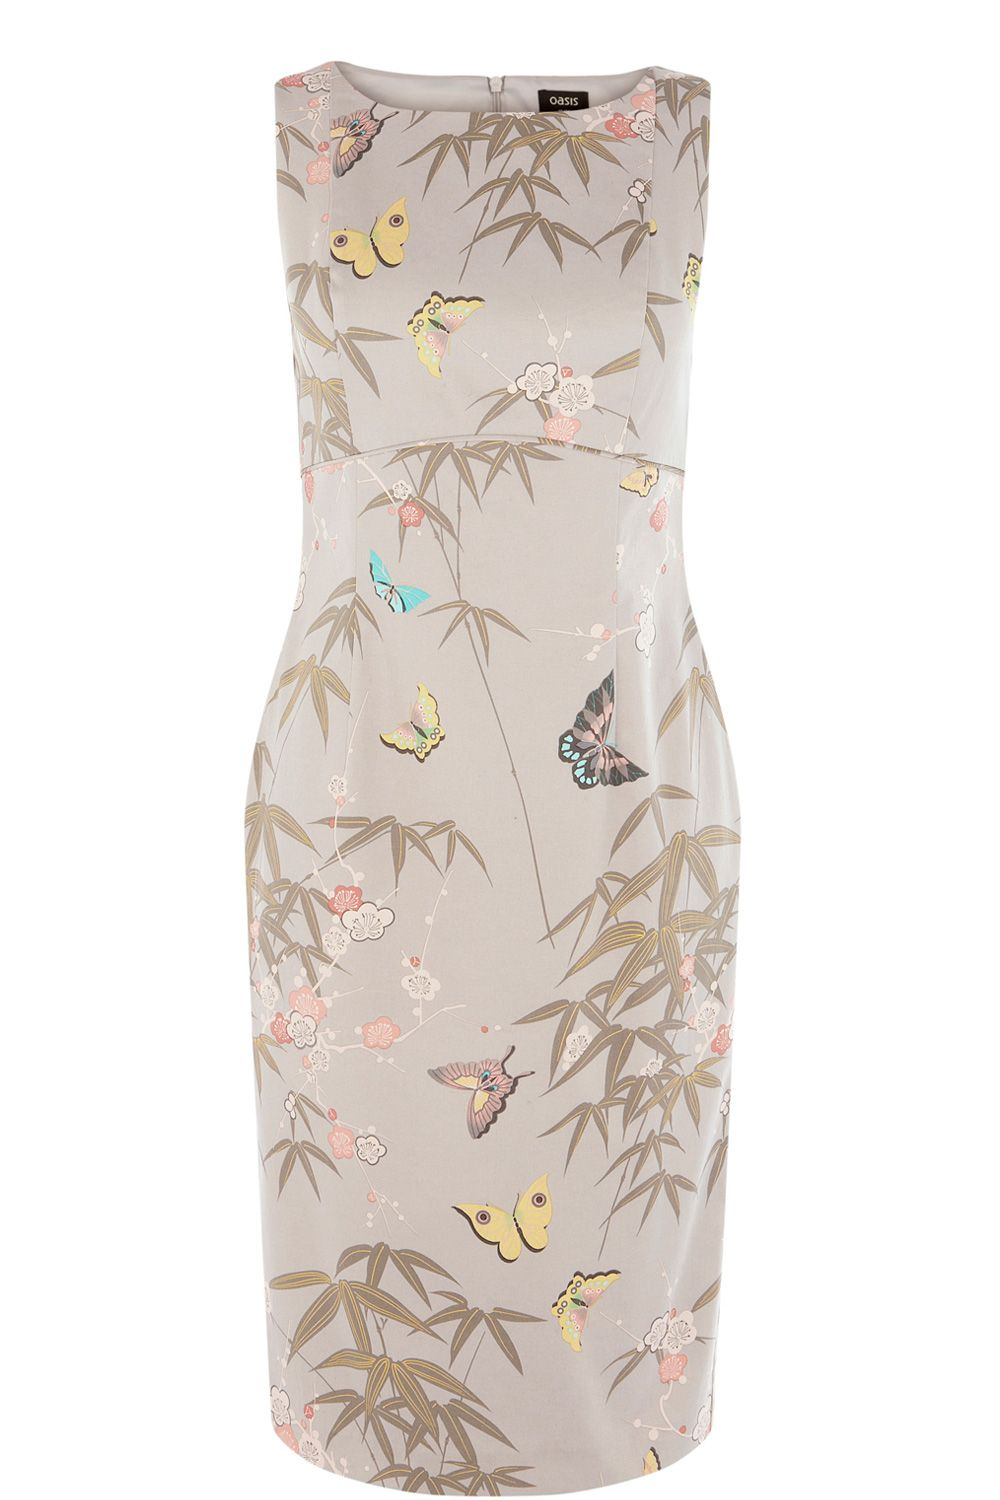 Bamboo butterfly dress